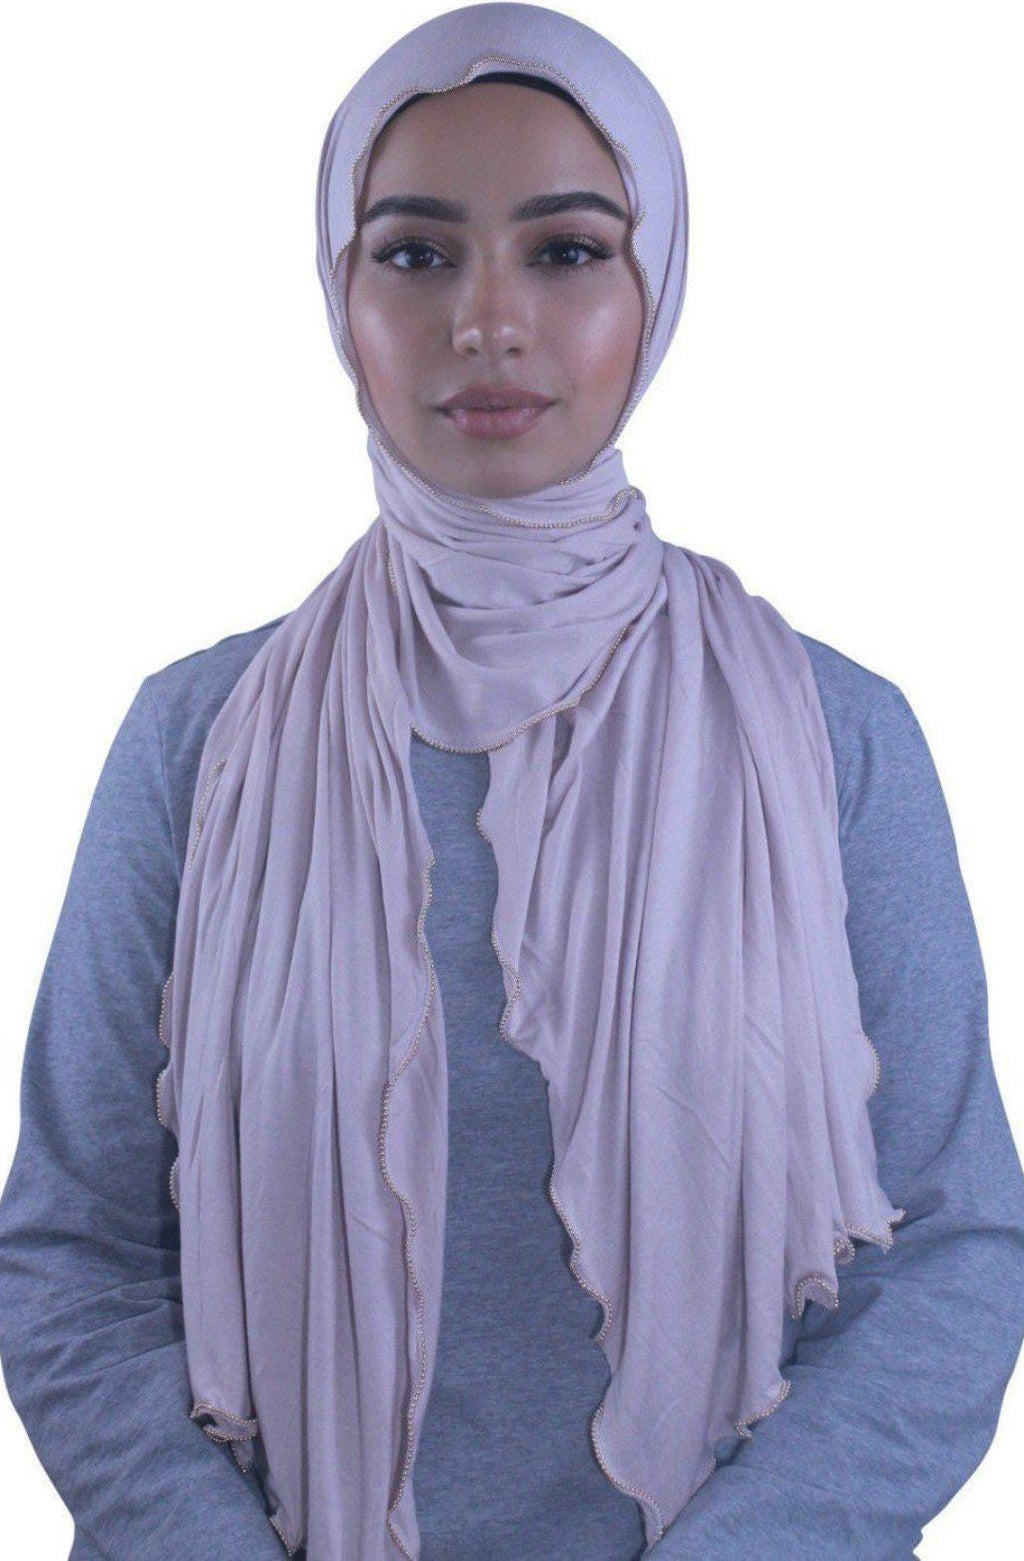 Beige Solid With Beaded Trim Hijab - Abaya, Hijabs, Jilbabs, on sale now at UrbanModesty.com